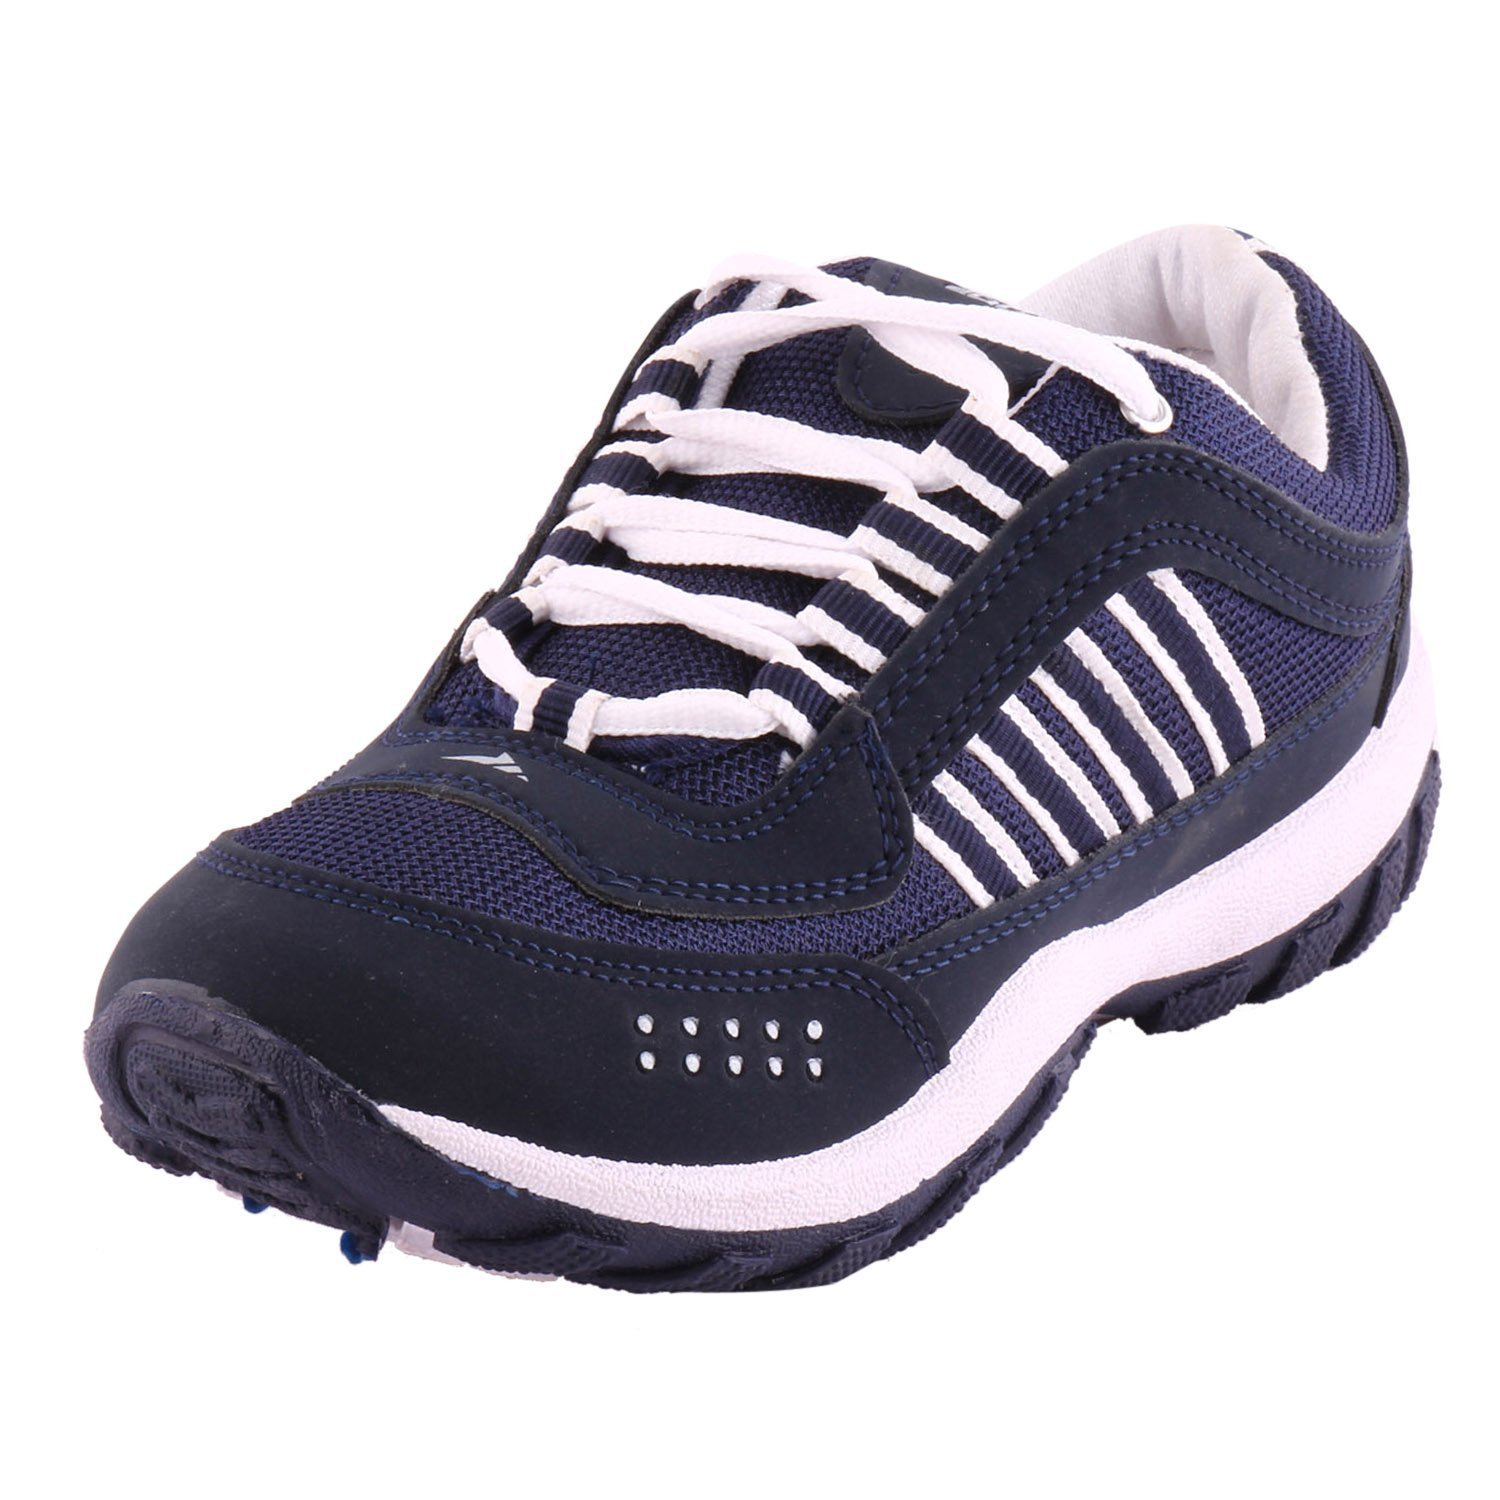 Bindas Blue Running Shoes exclusive cheap price buy cheap 2014 87j3iy7